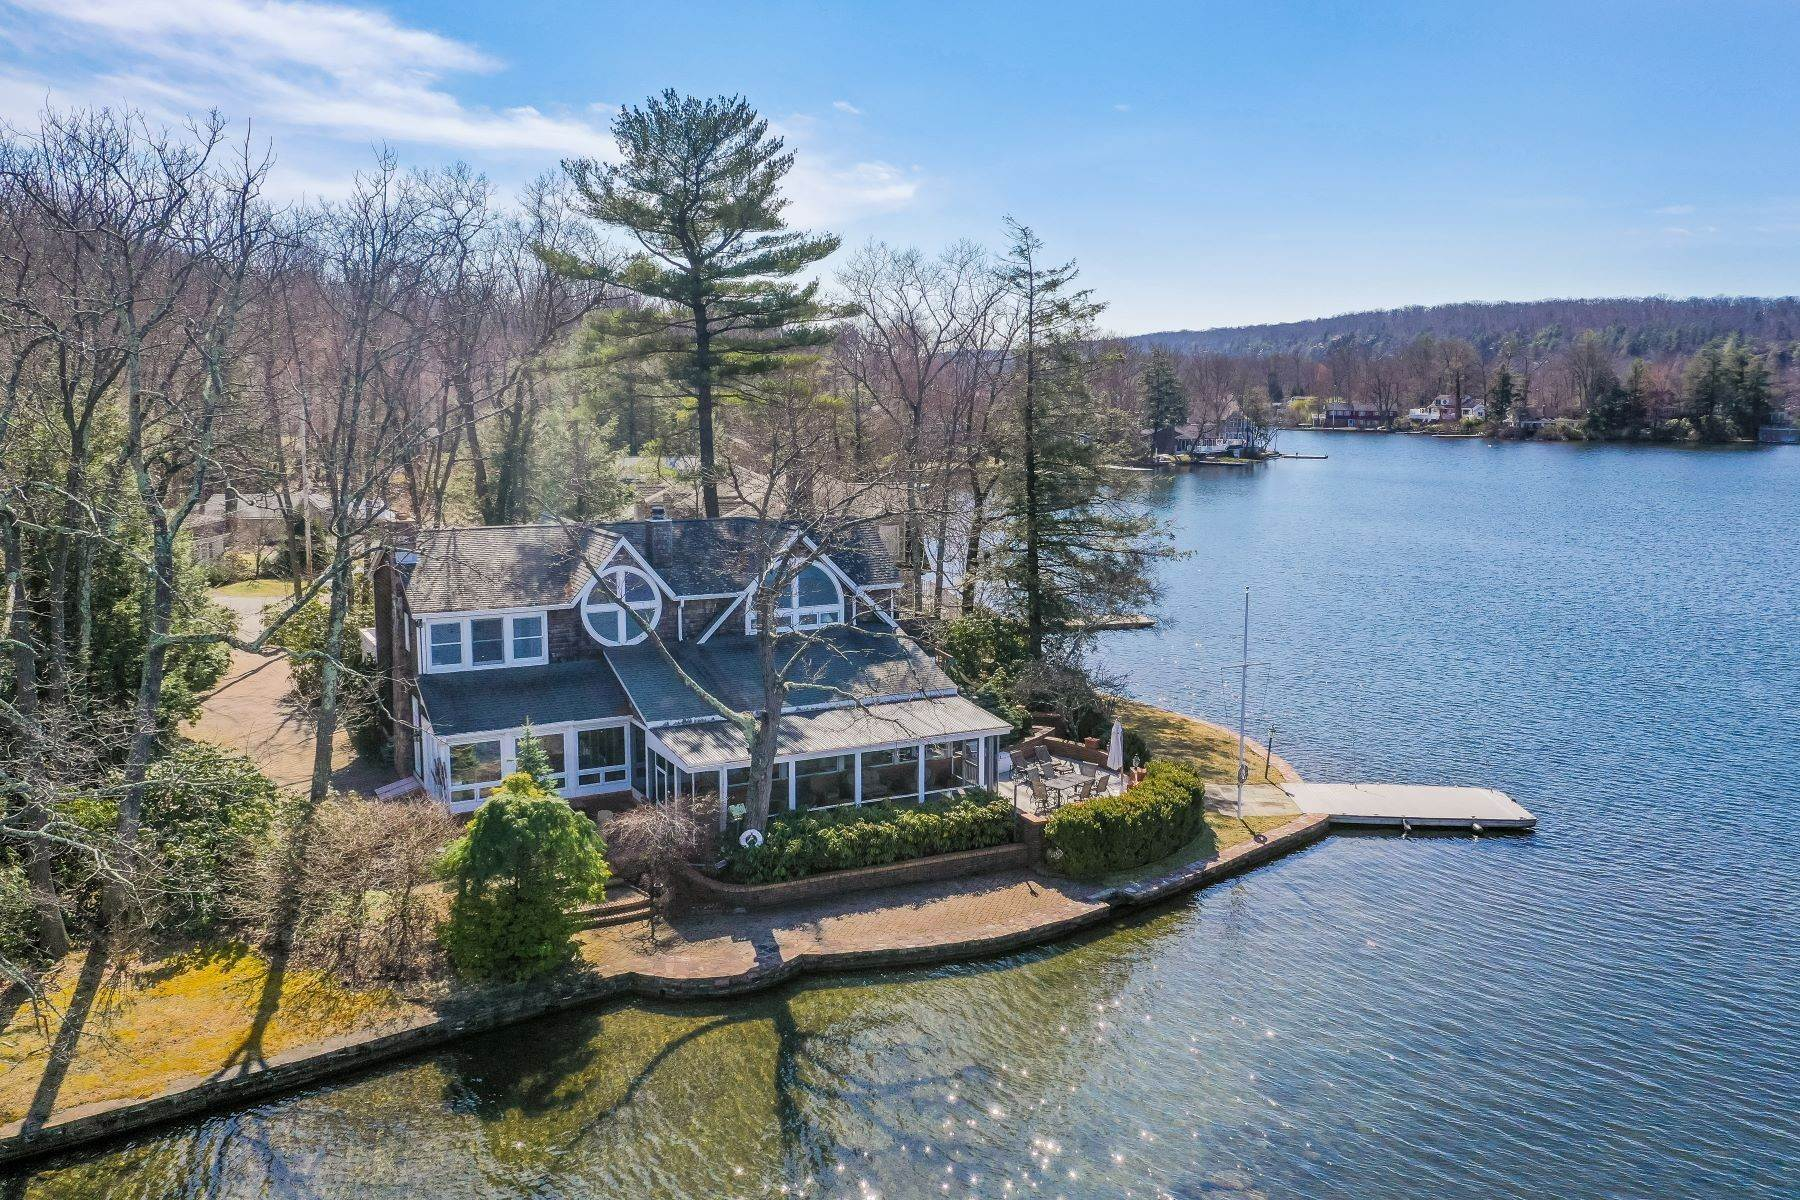 Single Family Homes for Sale at Breathtaking Lake Views 128 Lake End Road Rockaway Township, New Jersey 07435 United States